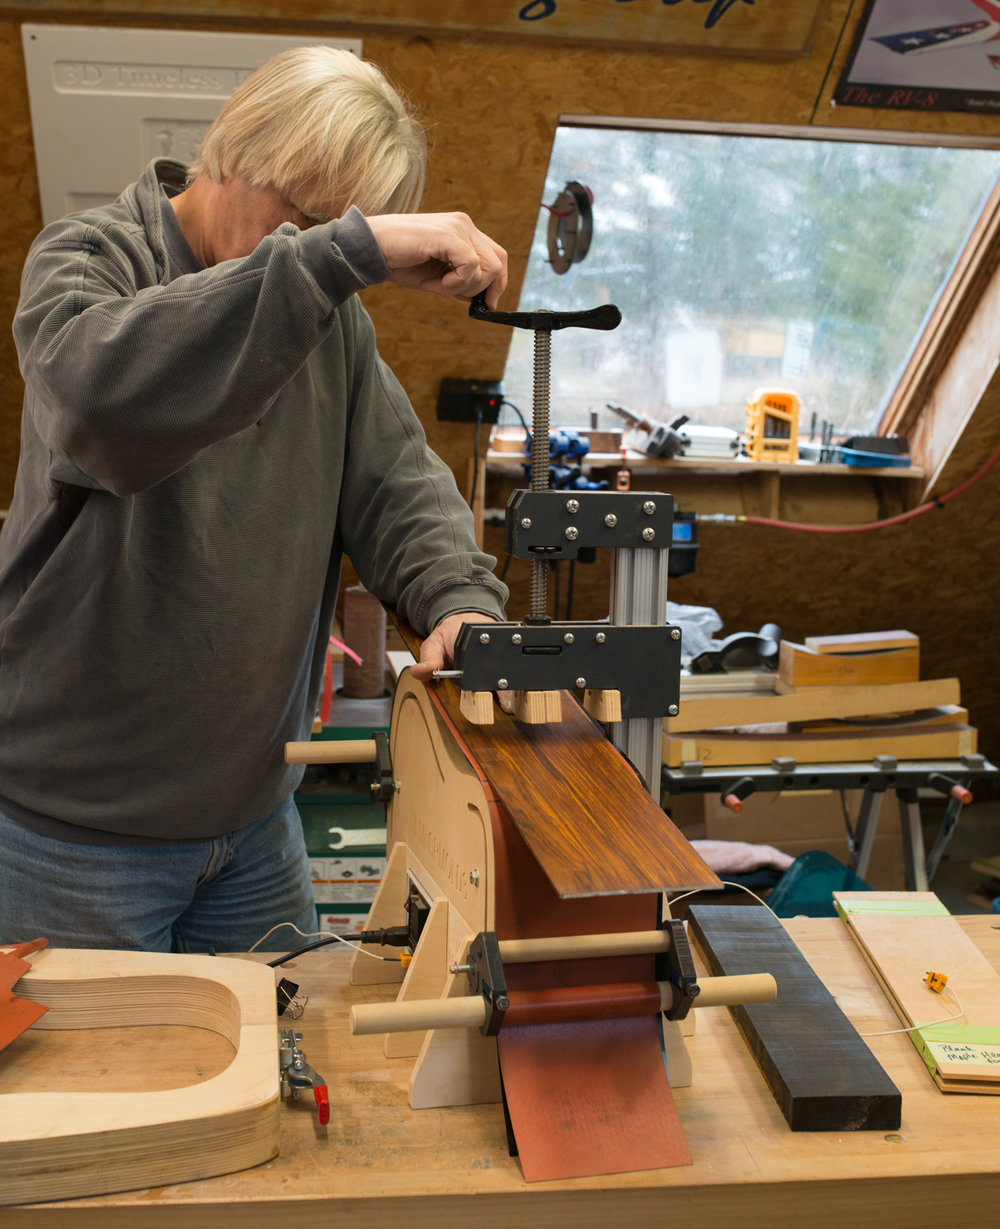 Custom handmade guitars workshop and construction.